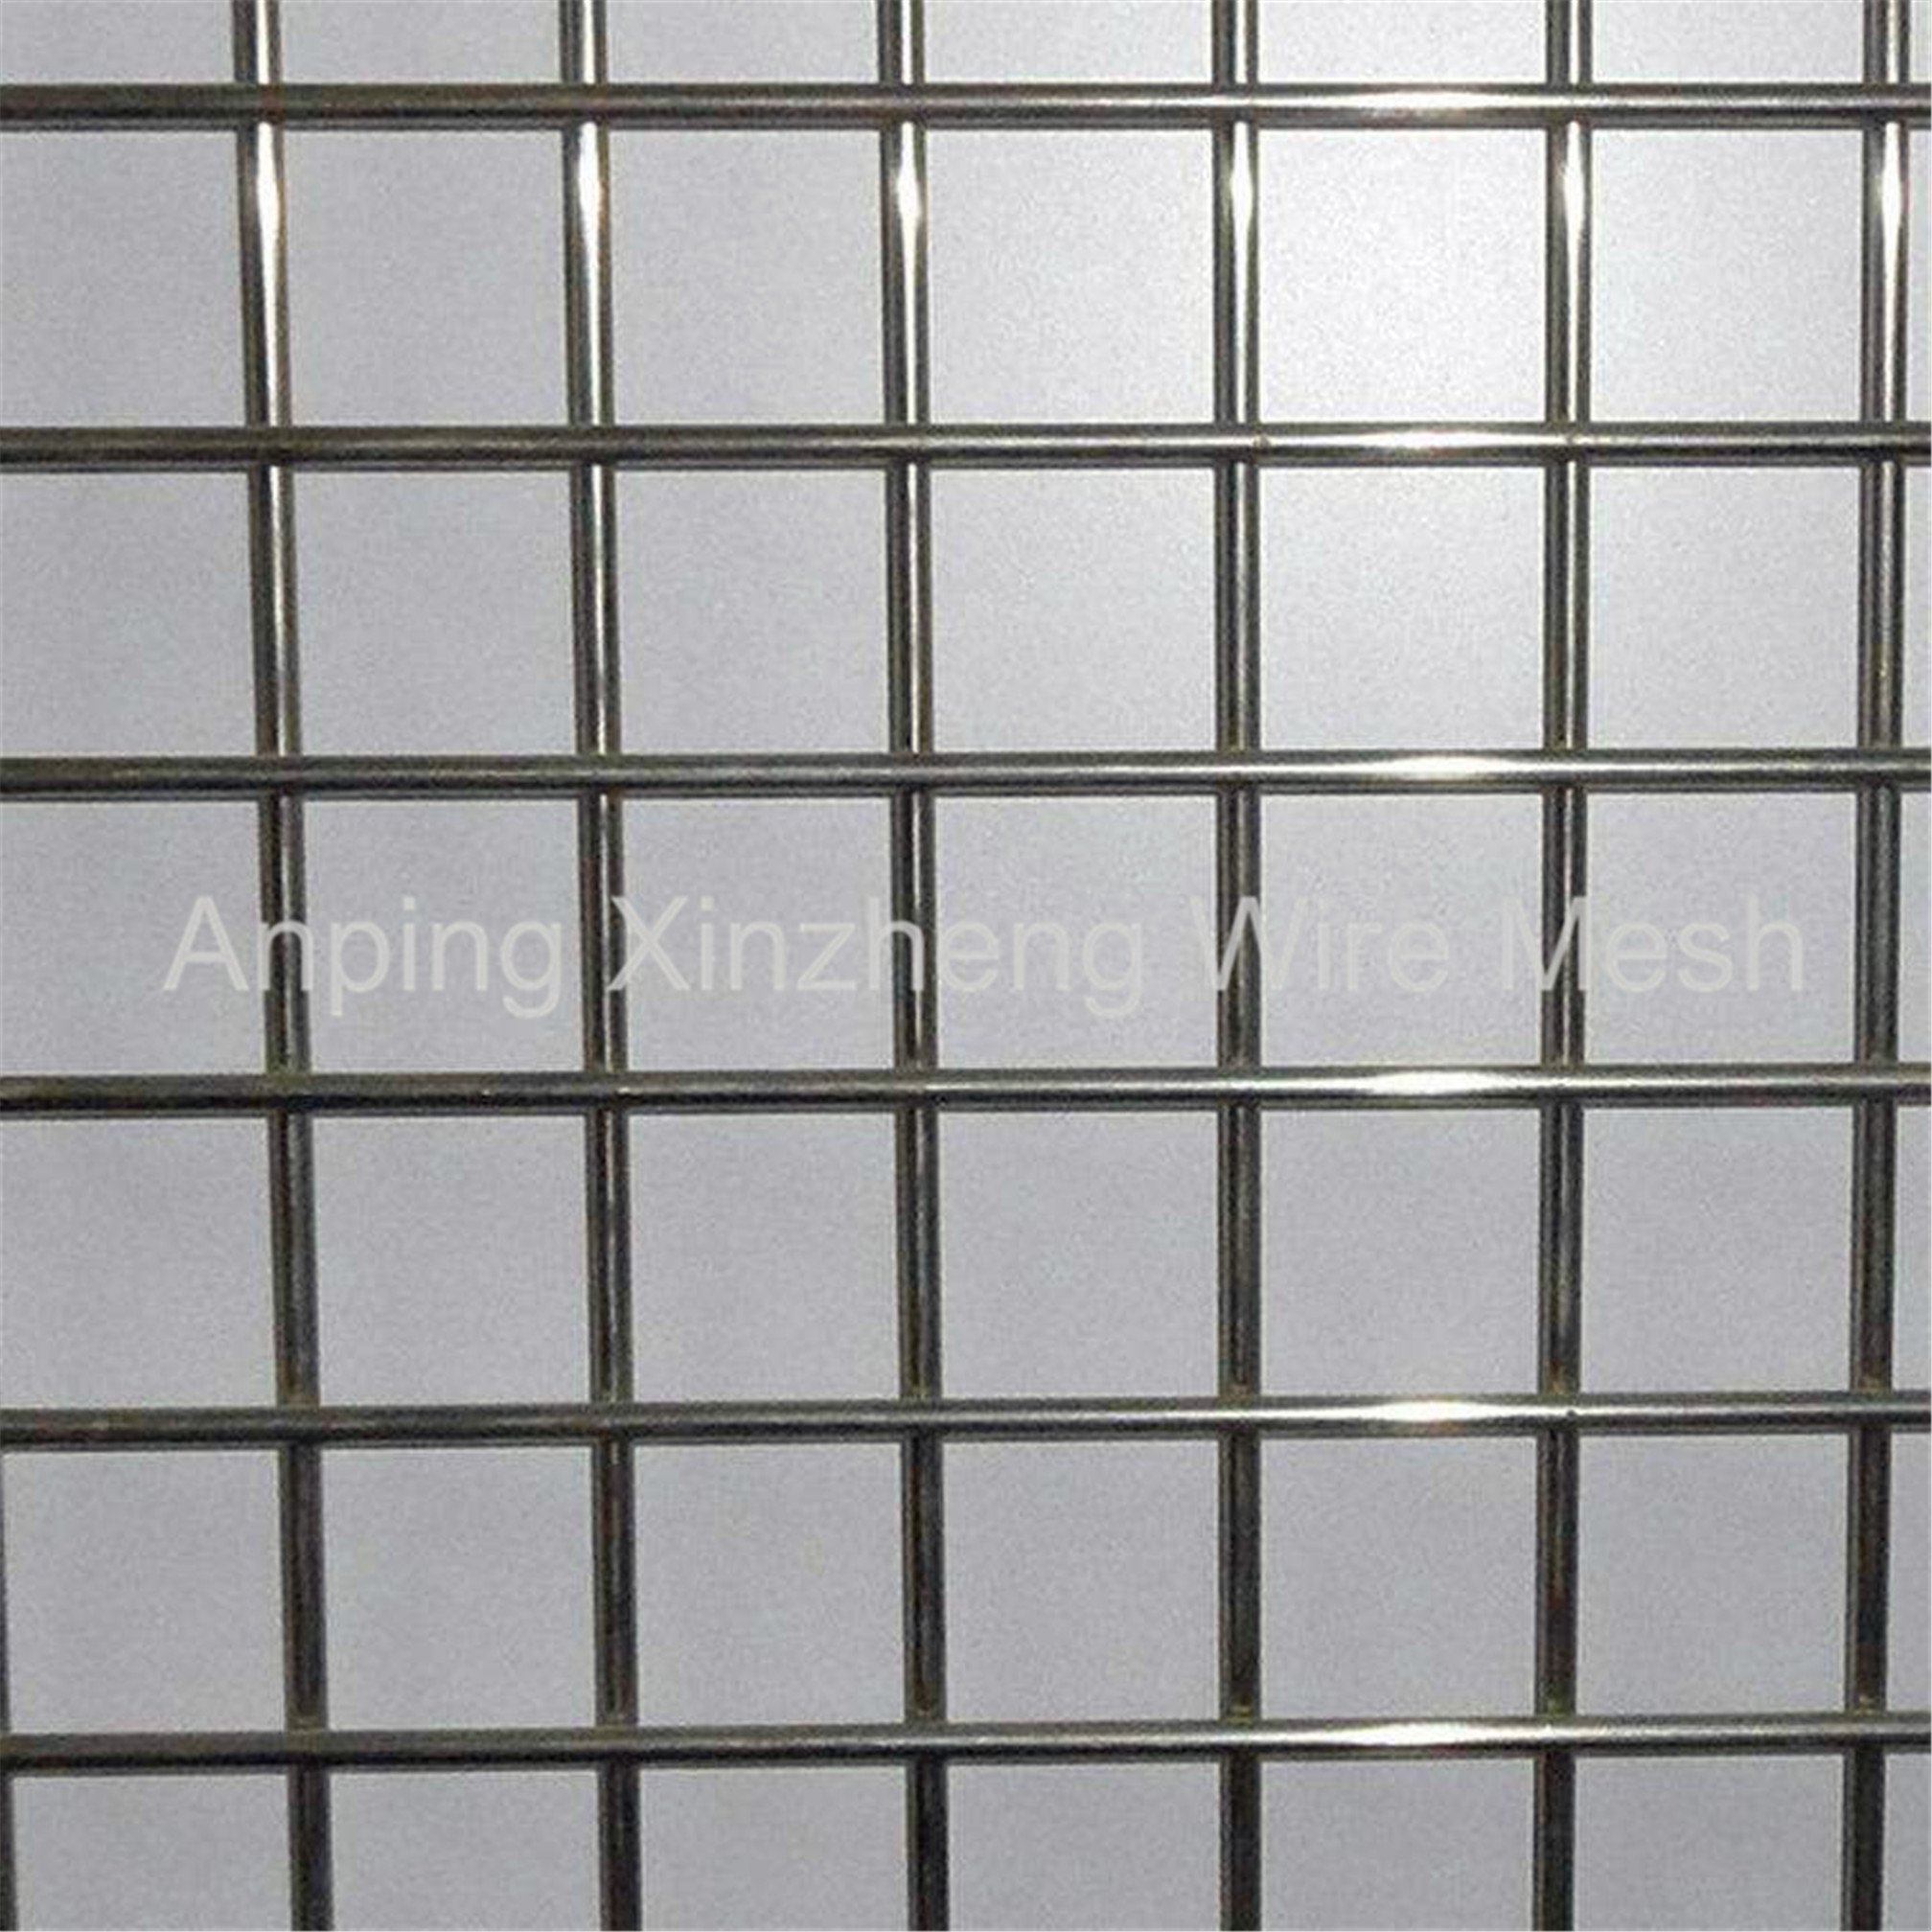 Stainless Steel Mesh Panels